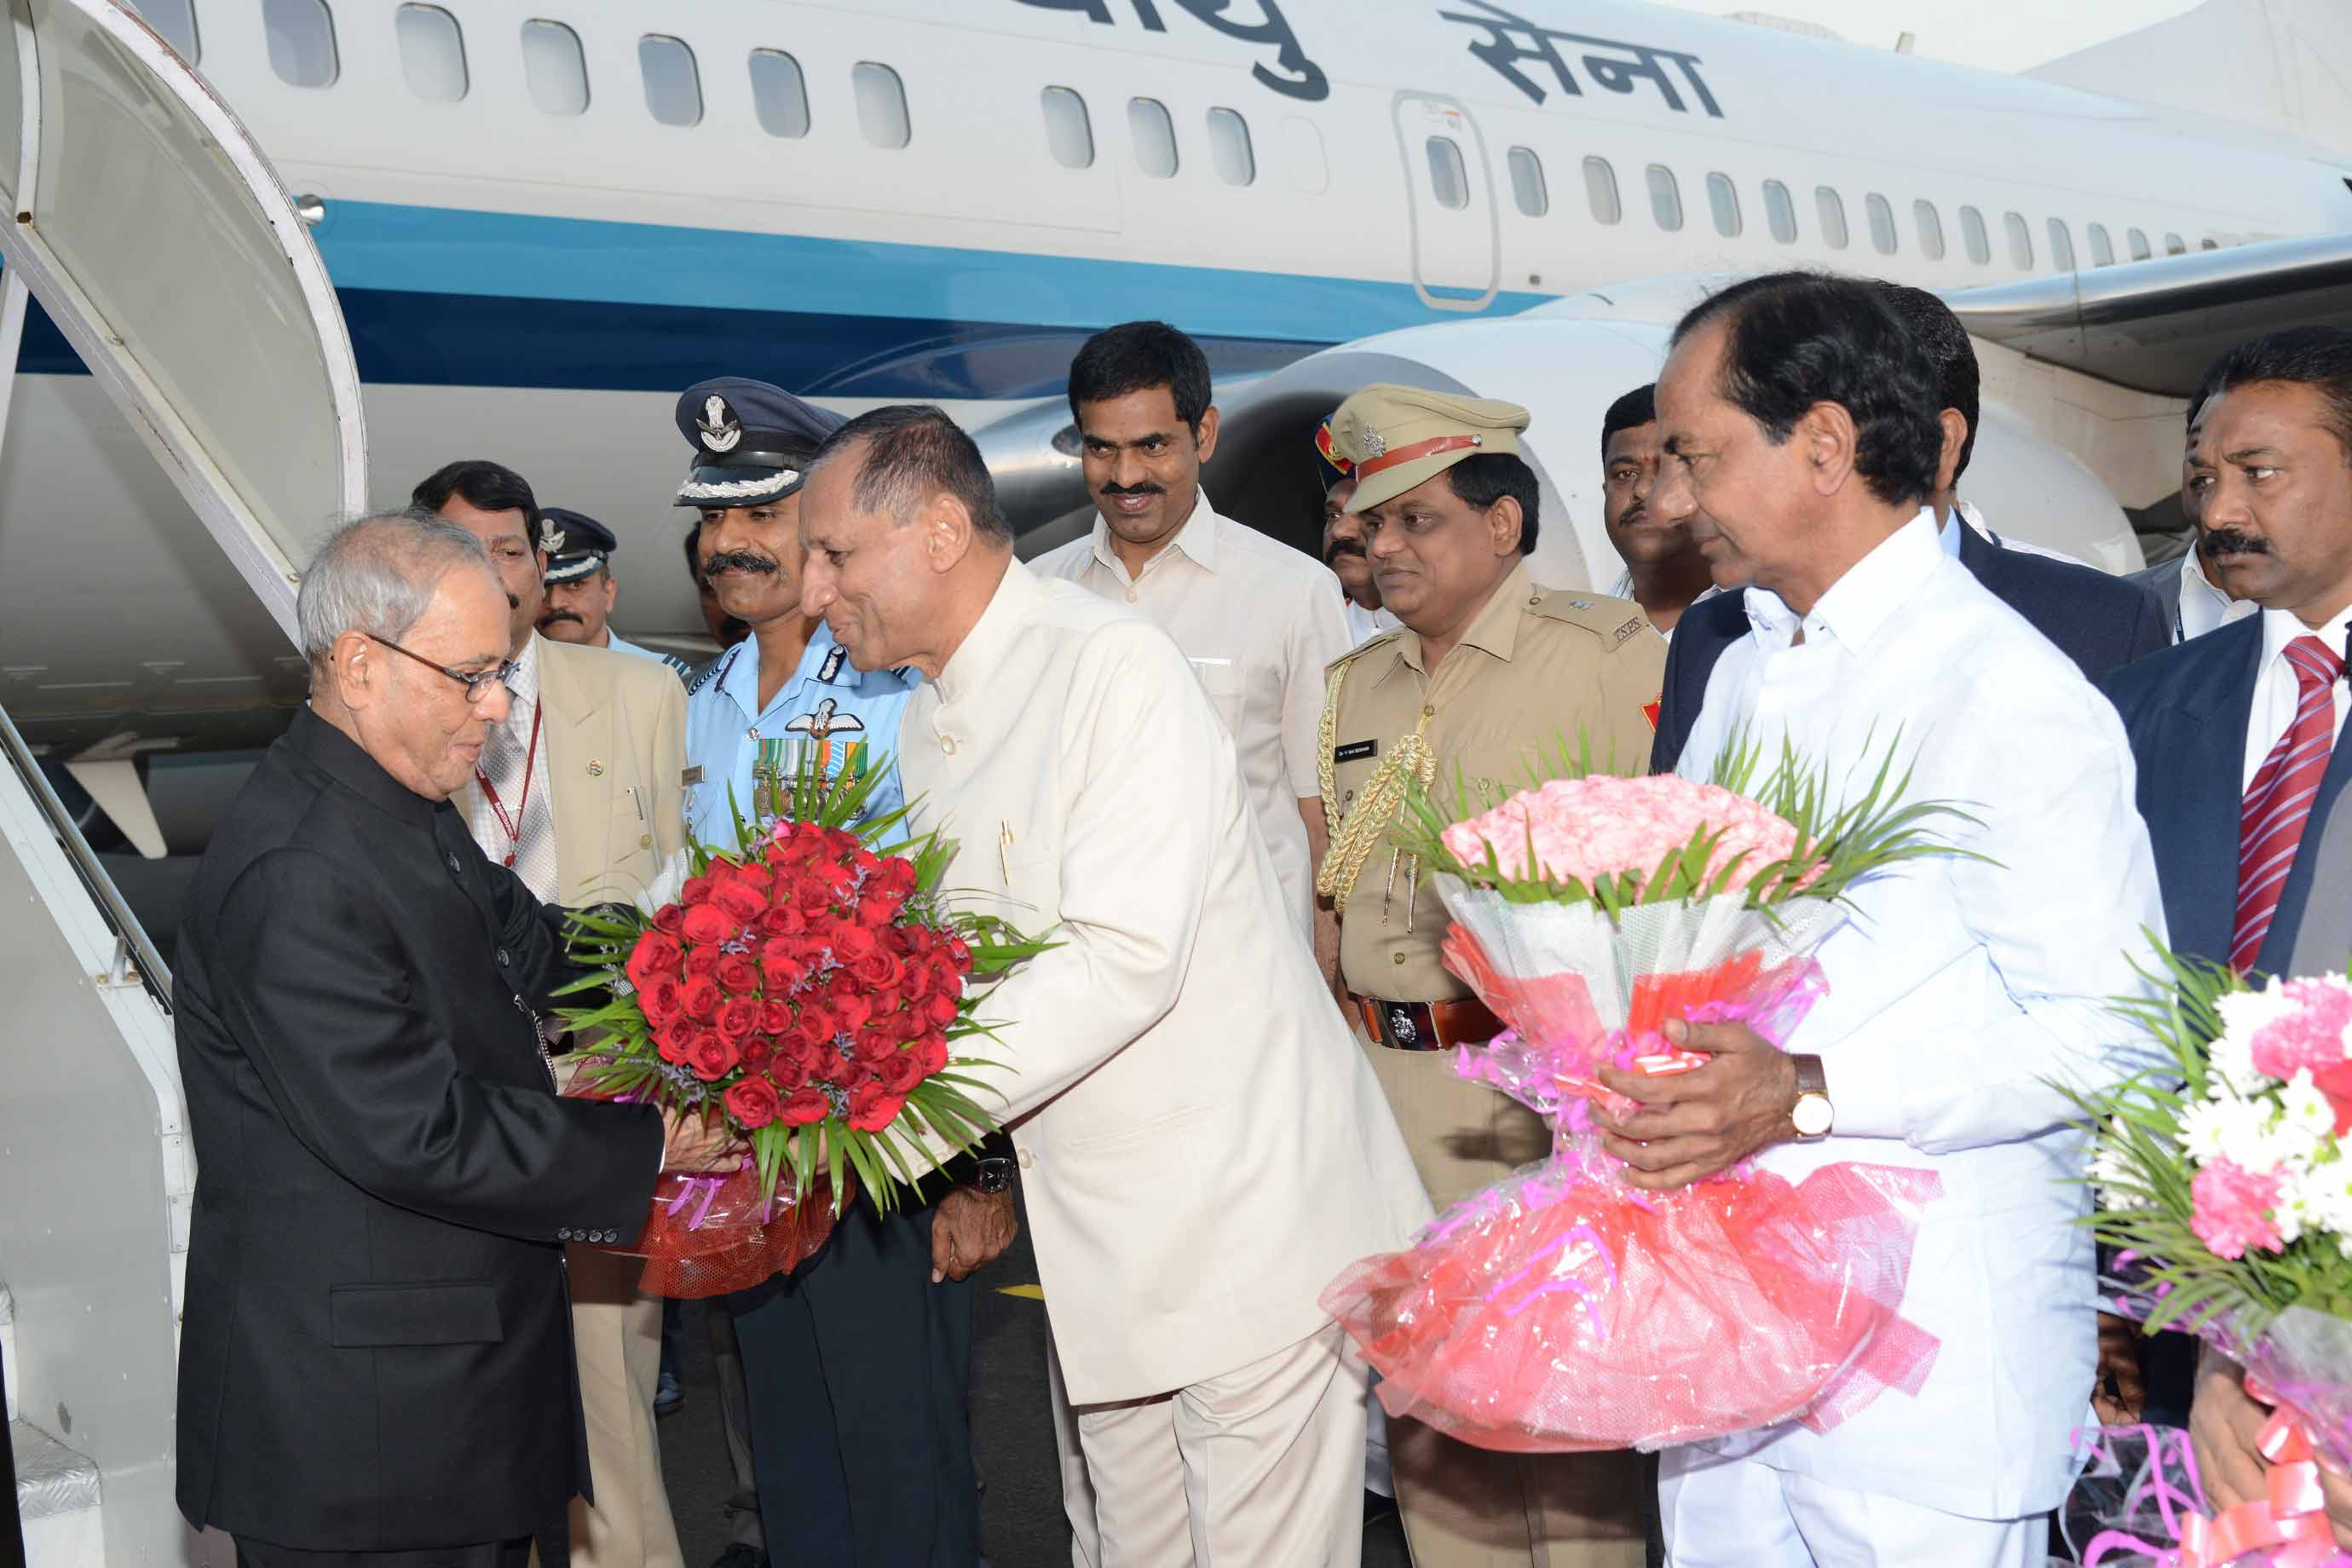 TS CM KCR Wellcomes President For Winter Visit At Hakimpet Airport On 18-12-2015